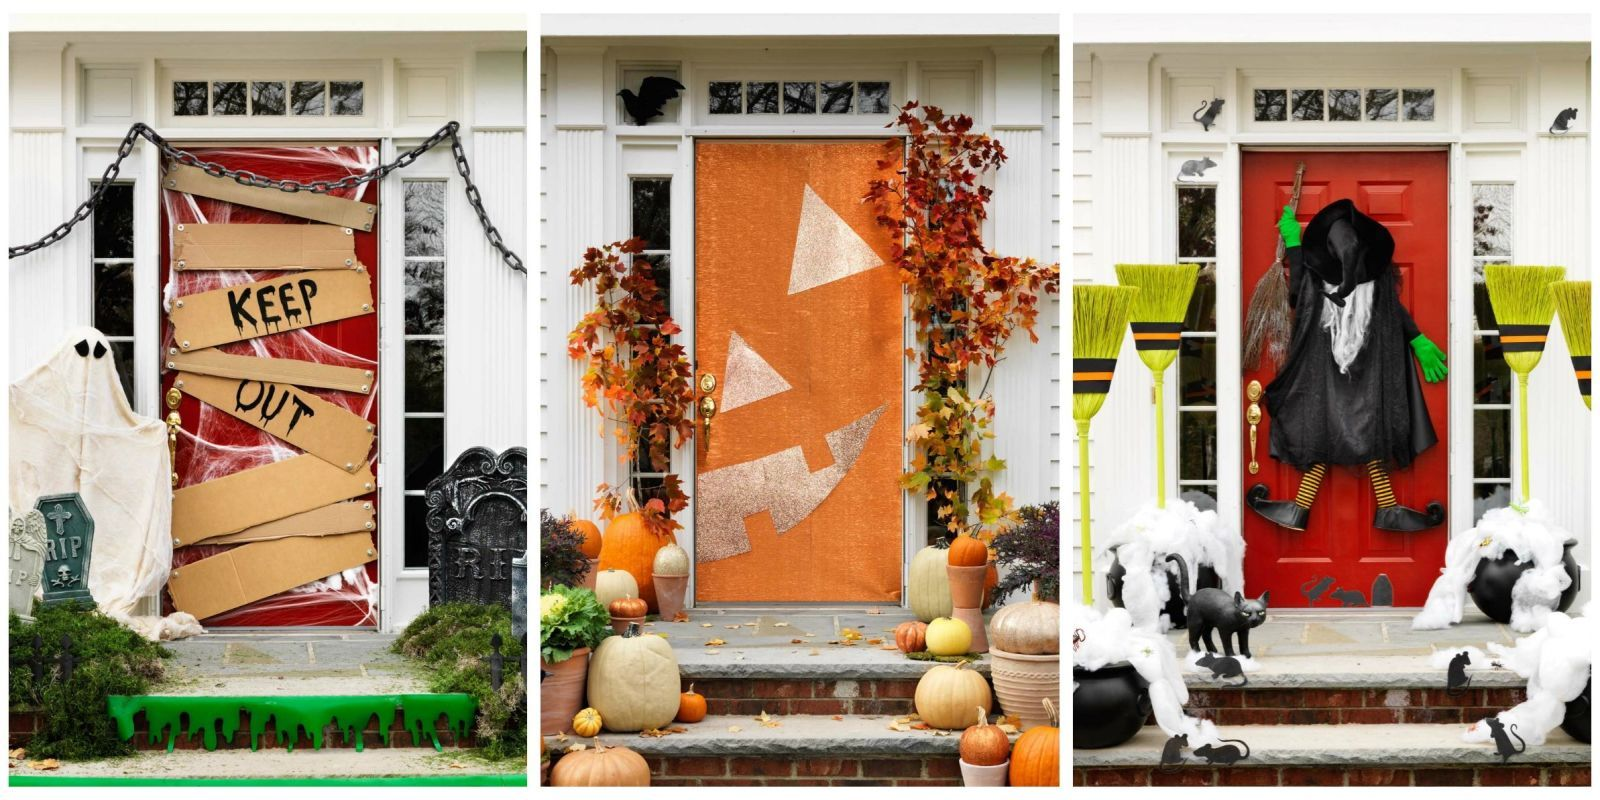 35+ Spooky Outdoor Halloween Decorations Your Yard Needs - Scary Halloween Yard Decorating Ideas